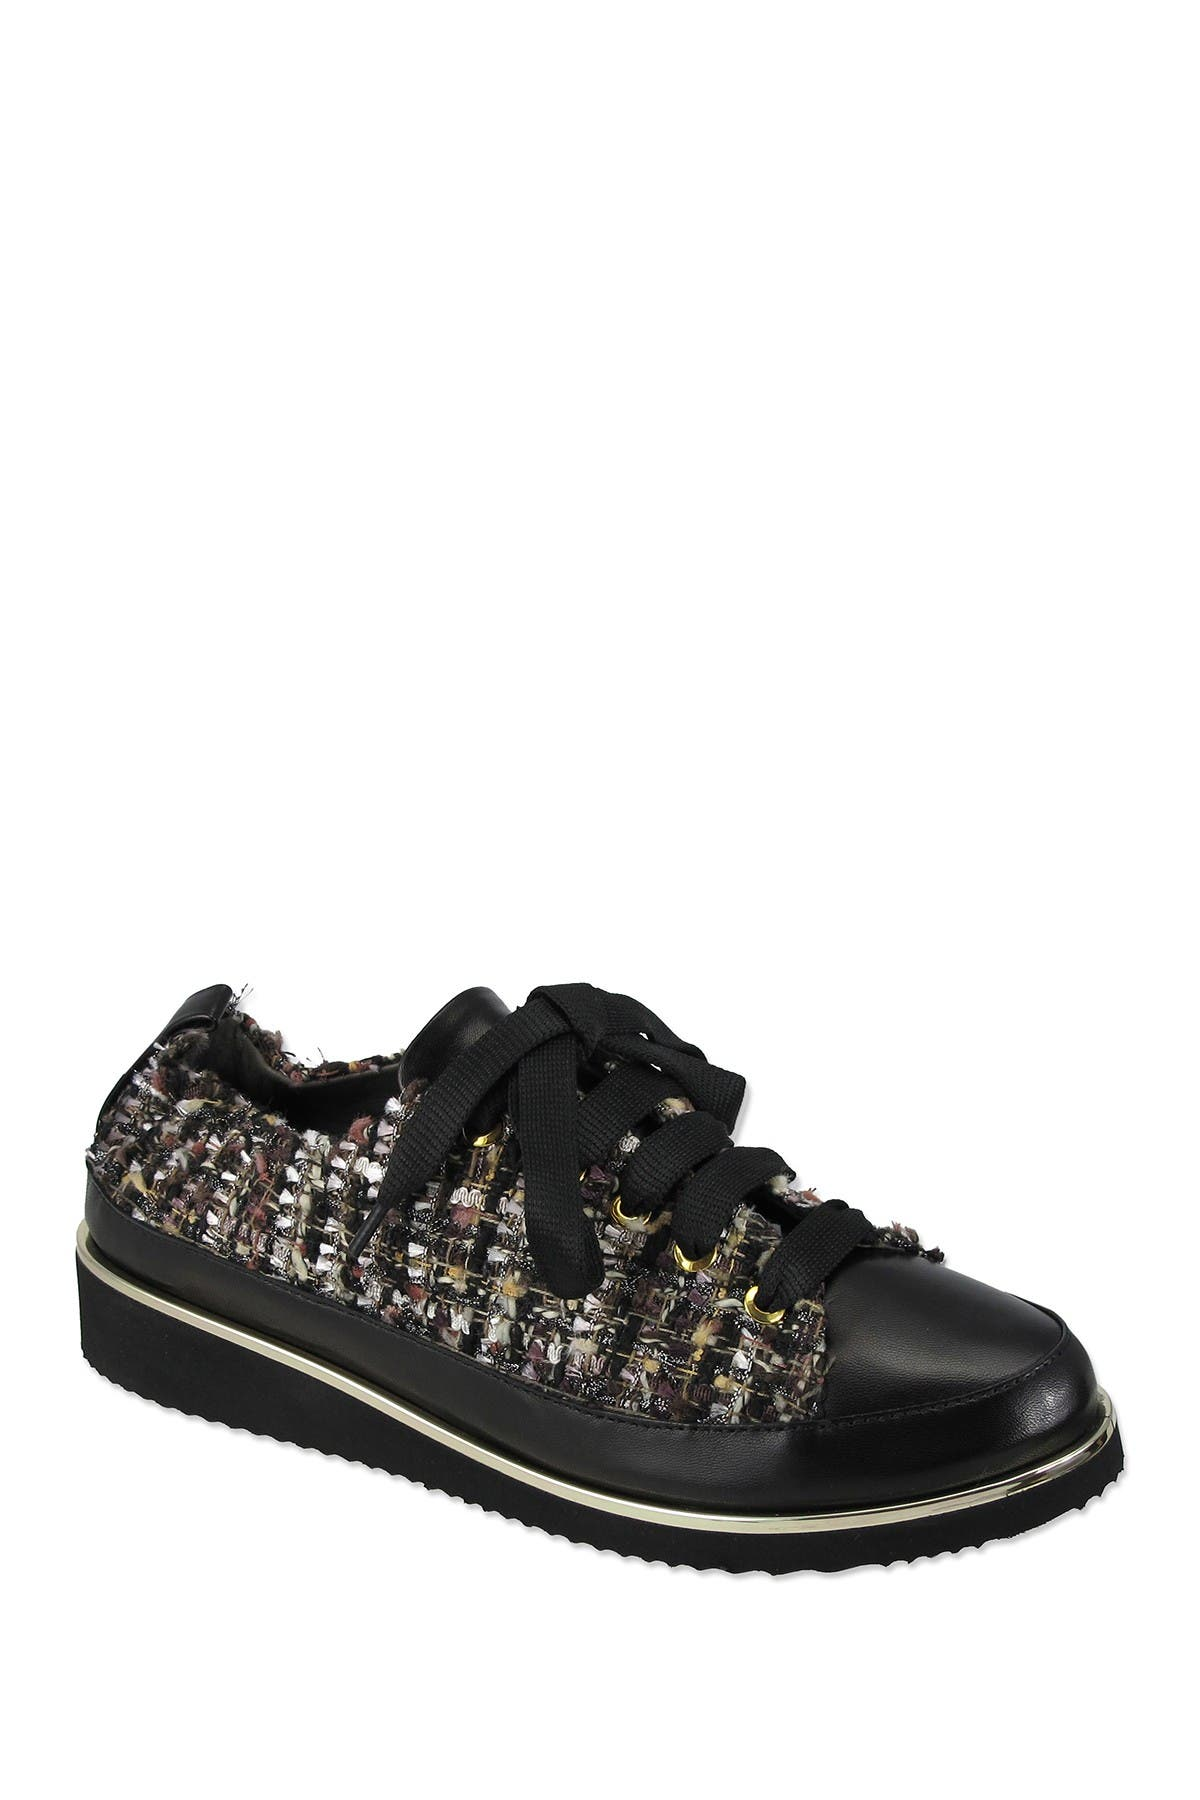 Image of RON WHITE Tweed Boucle Novella Sneaker